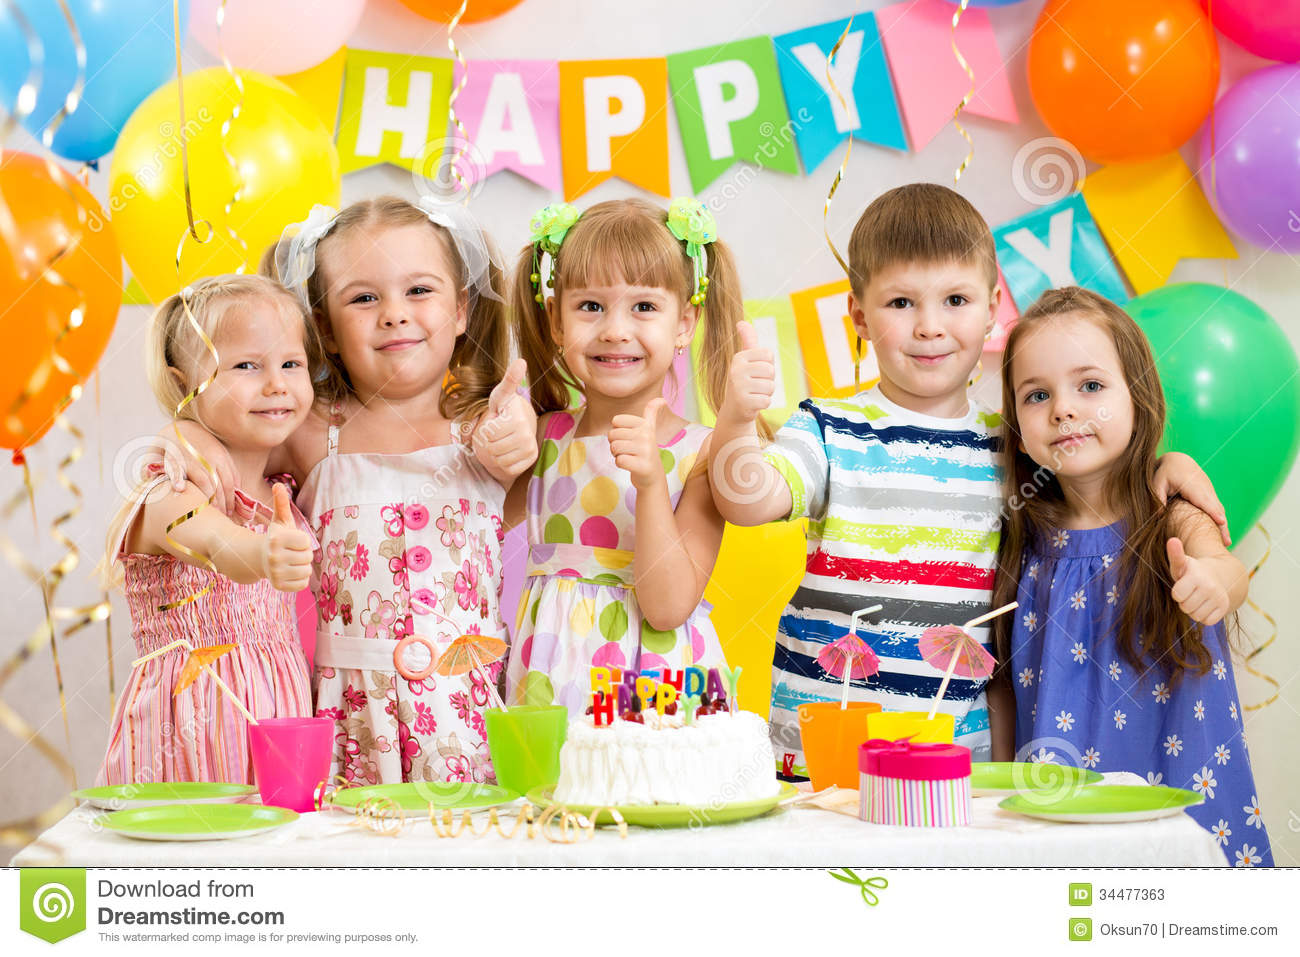 picture of birthday party celebration ; children-celebrating-birthday-party-happy-kids-34477363